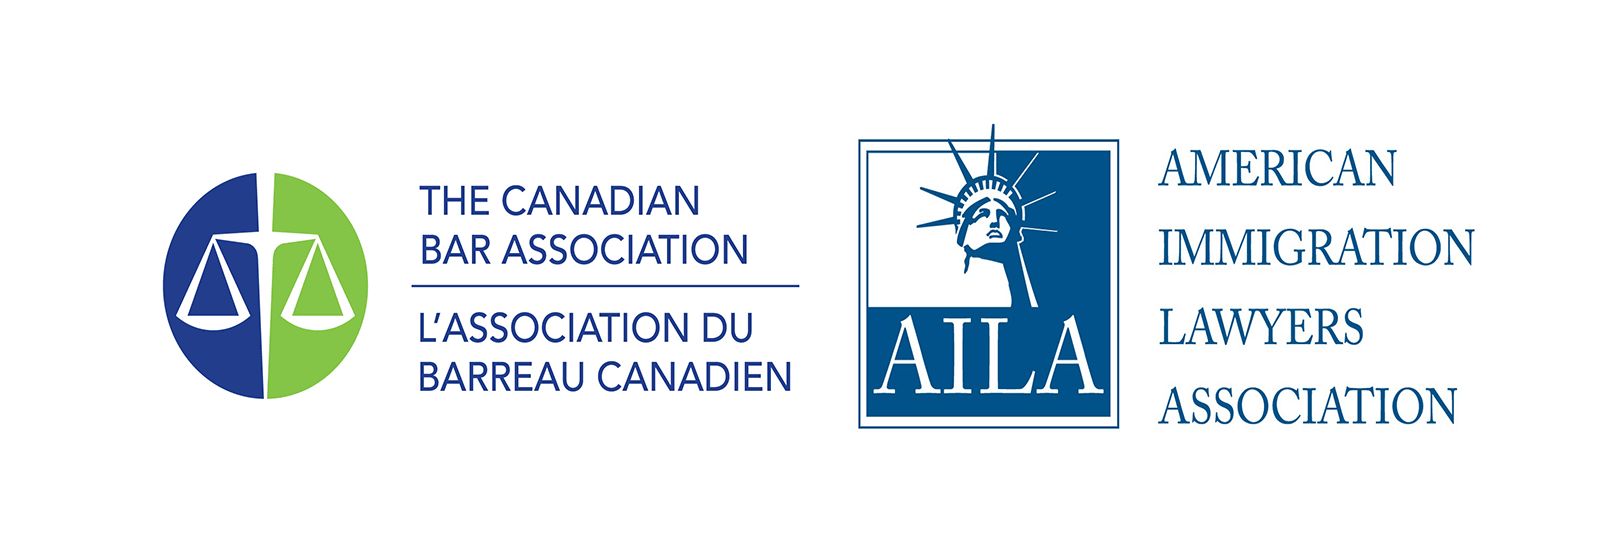 Canadian Bar Association & AILA Logo